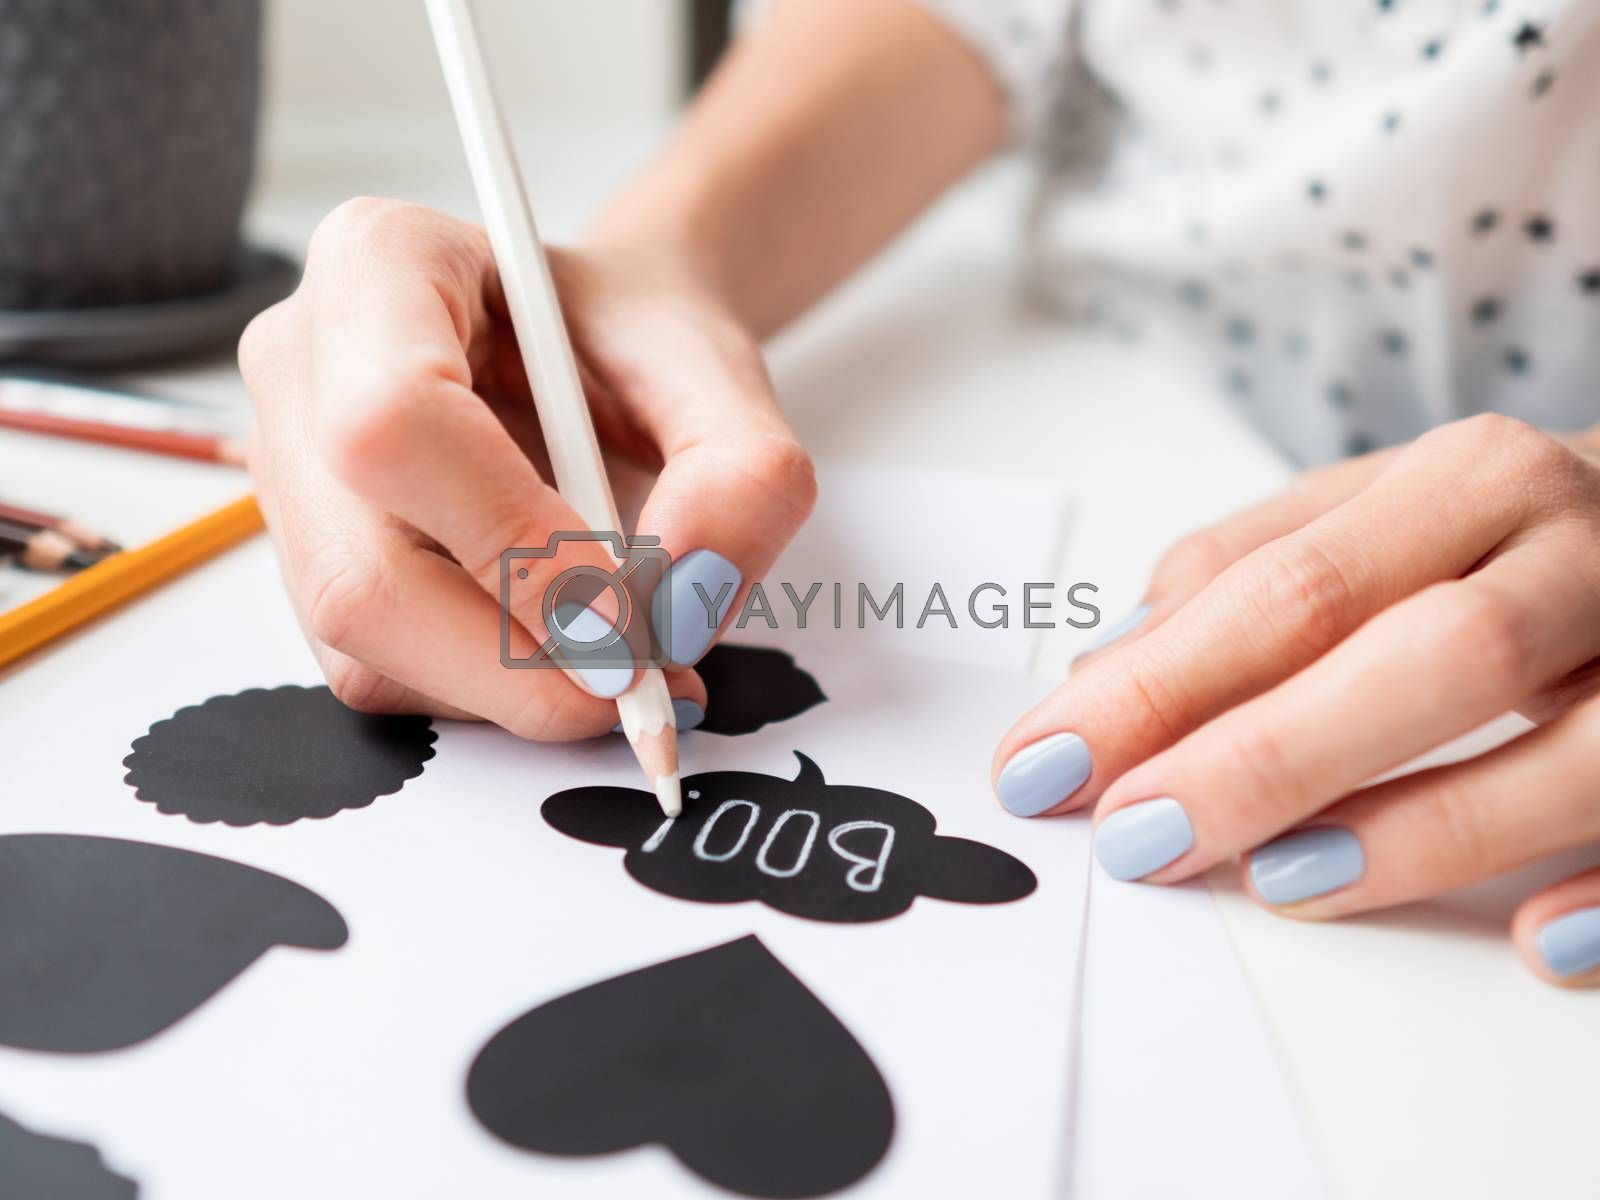 Woman writes Boo! on decorative black stickers for flower pots. Handmade decorations for Halloween.